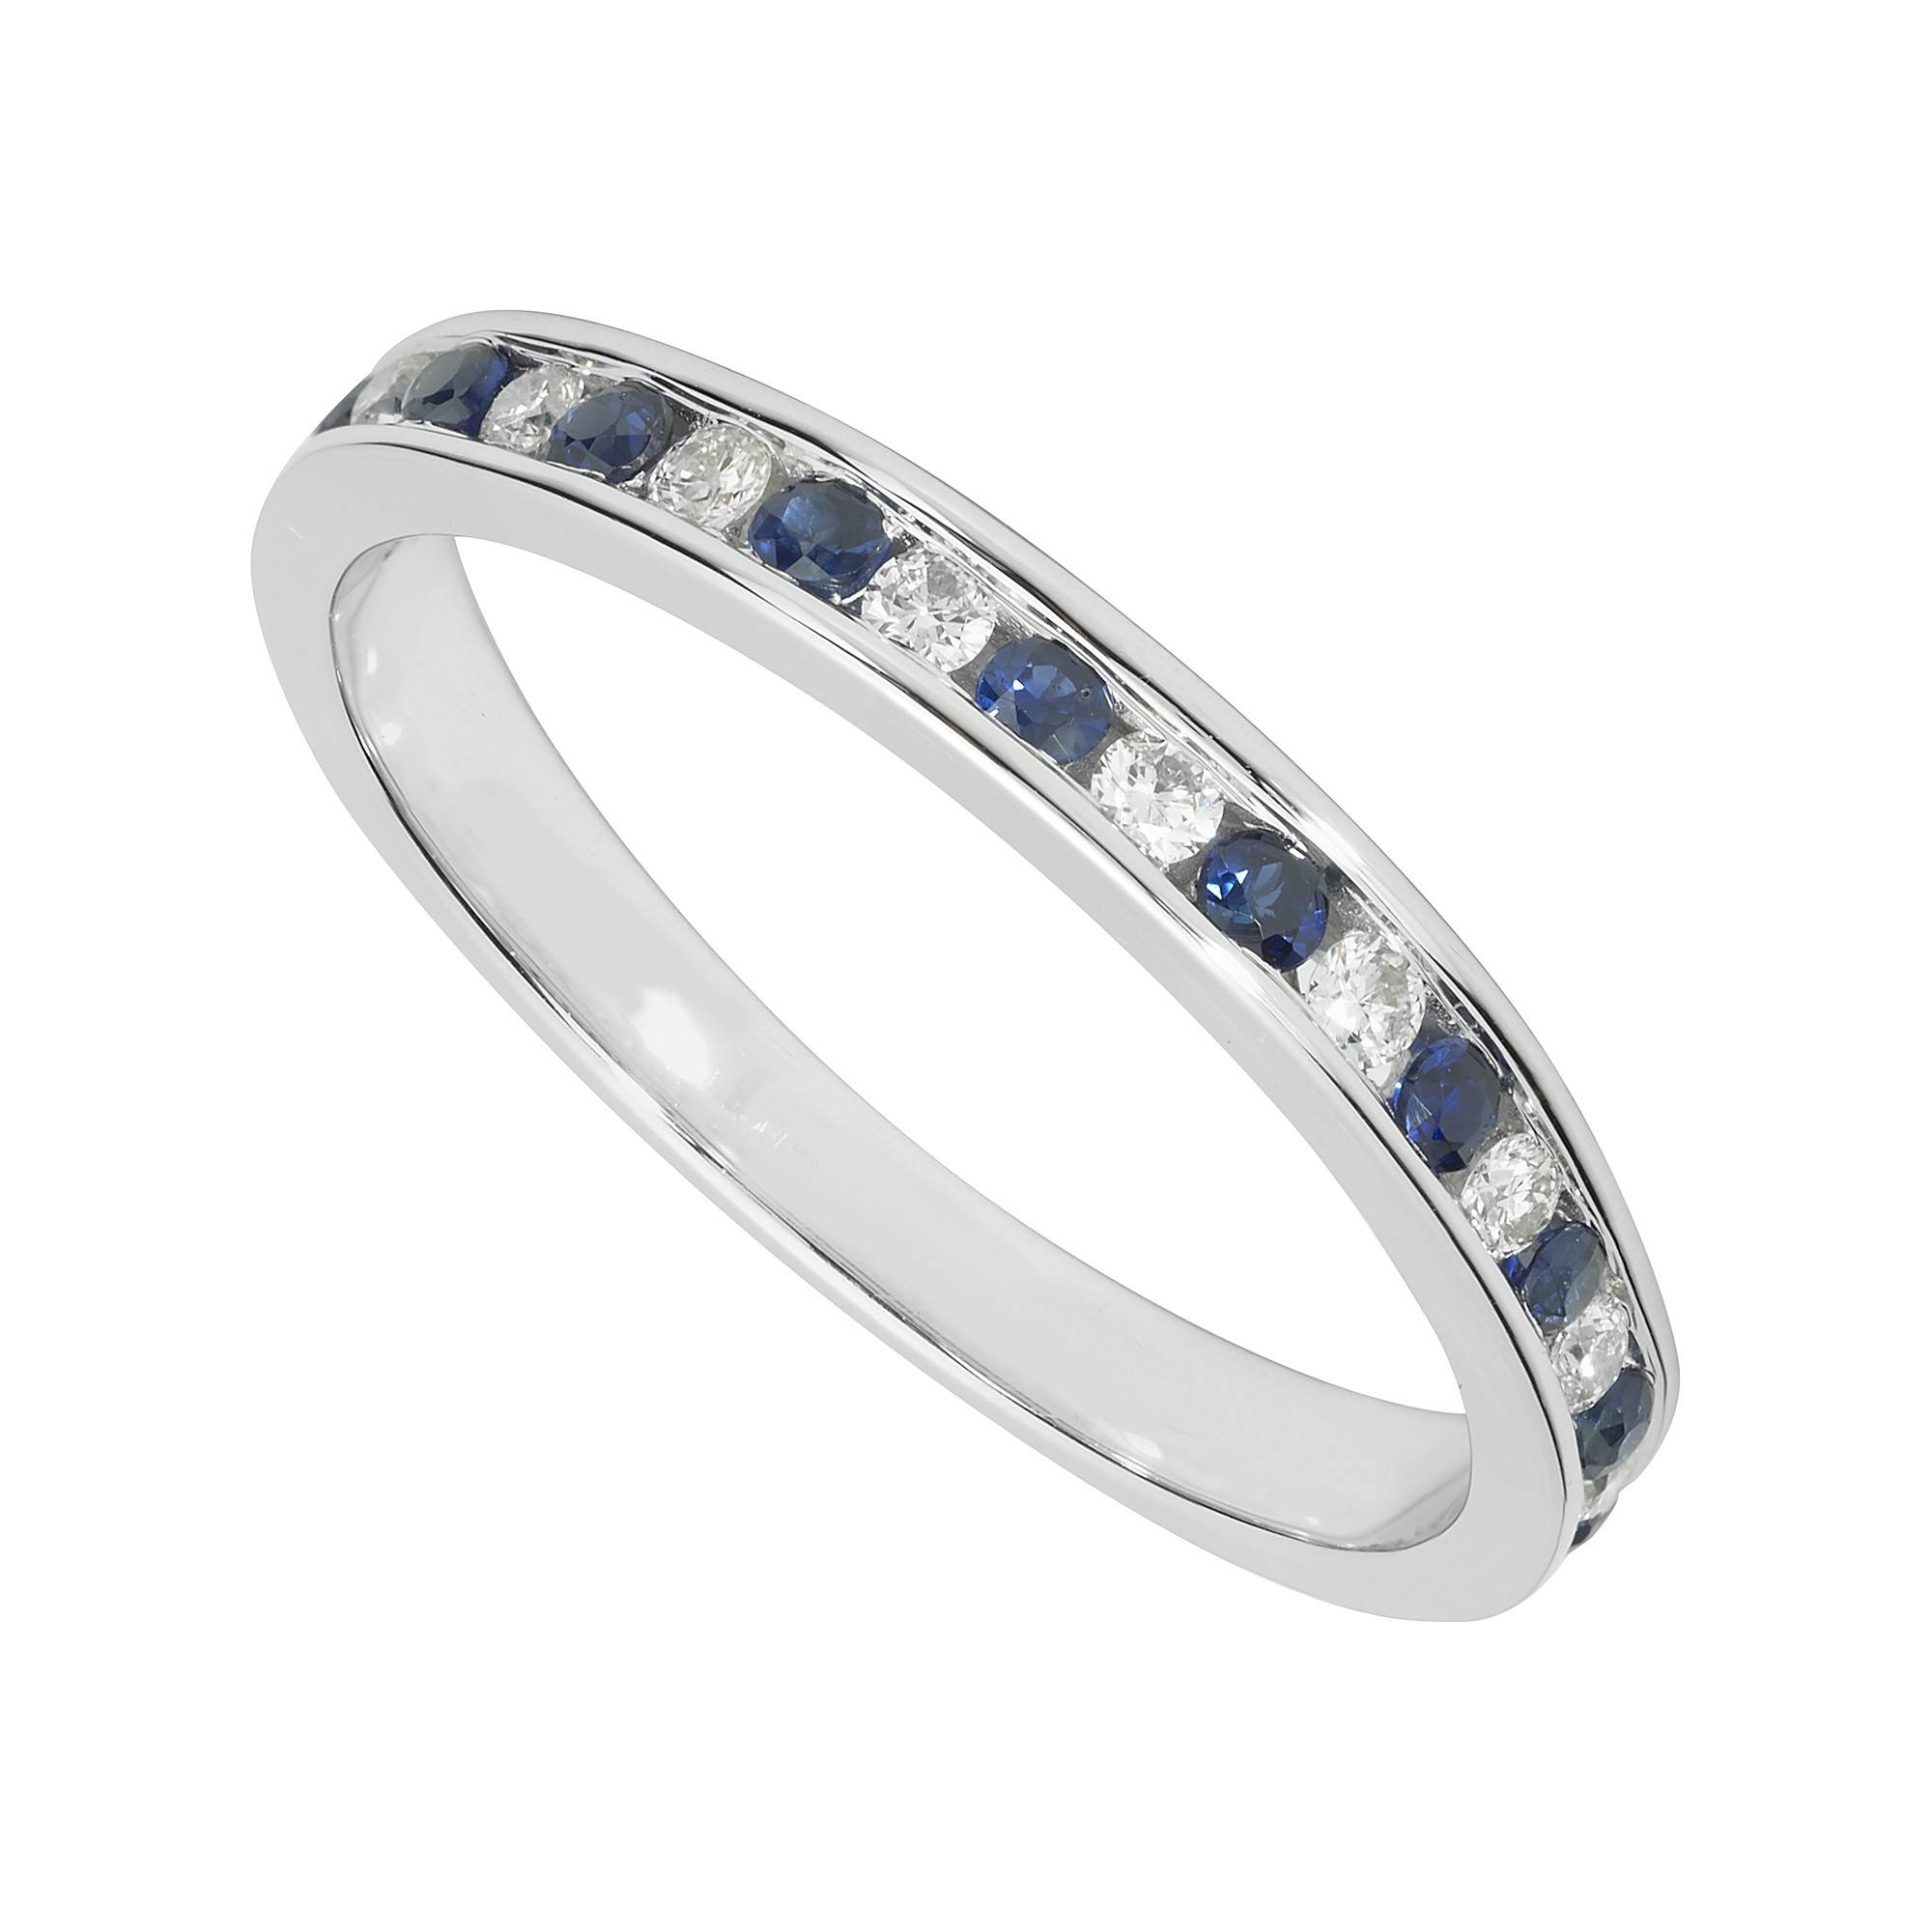 Ladies' 9ct White Gold Diamond And Sapphire Wedding Ring In White Gold And Diamond Wedding Rings (View 12 of 15)